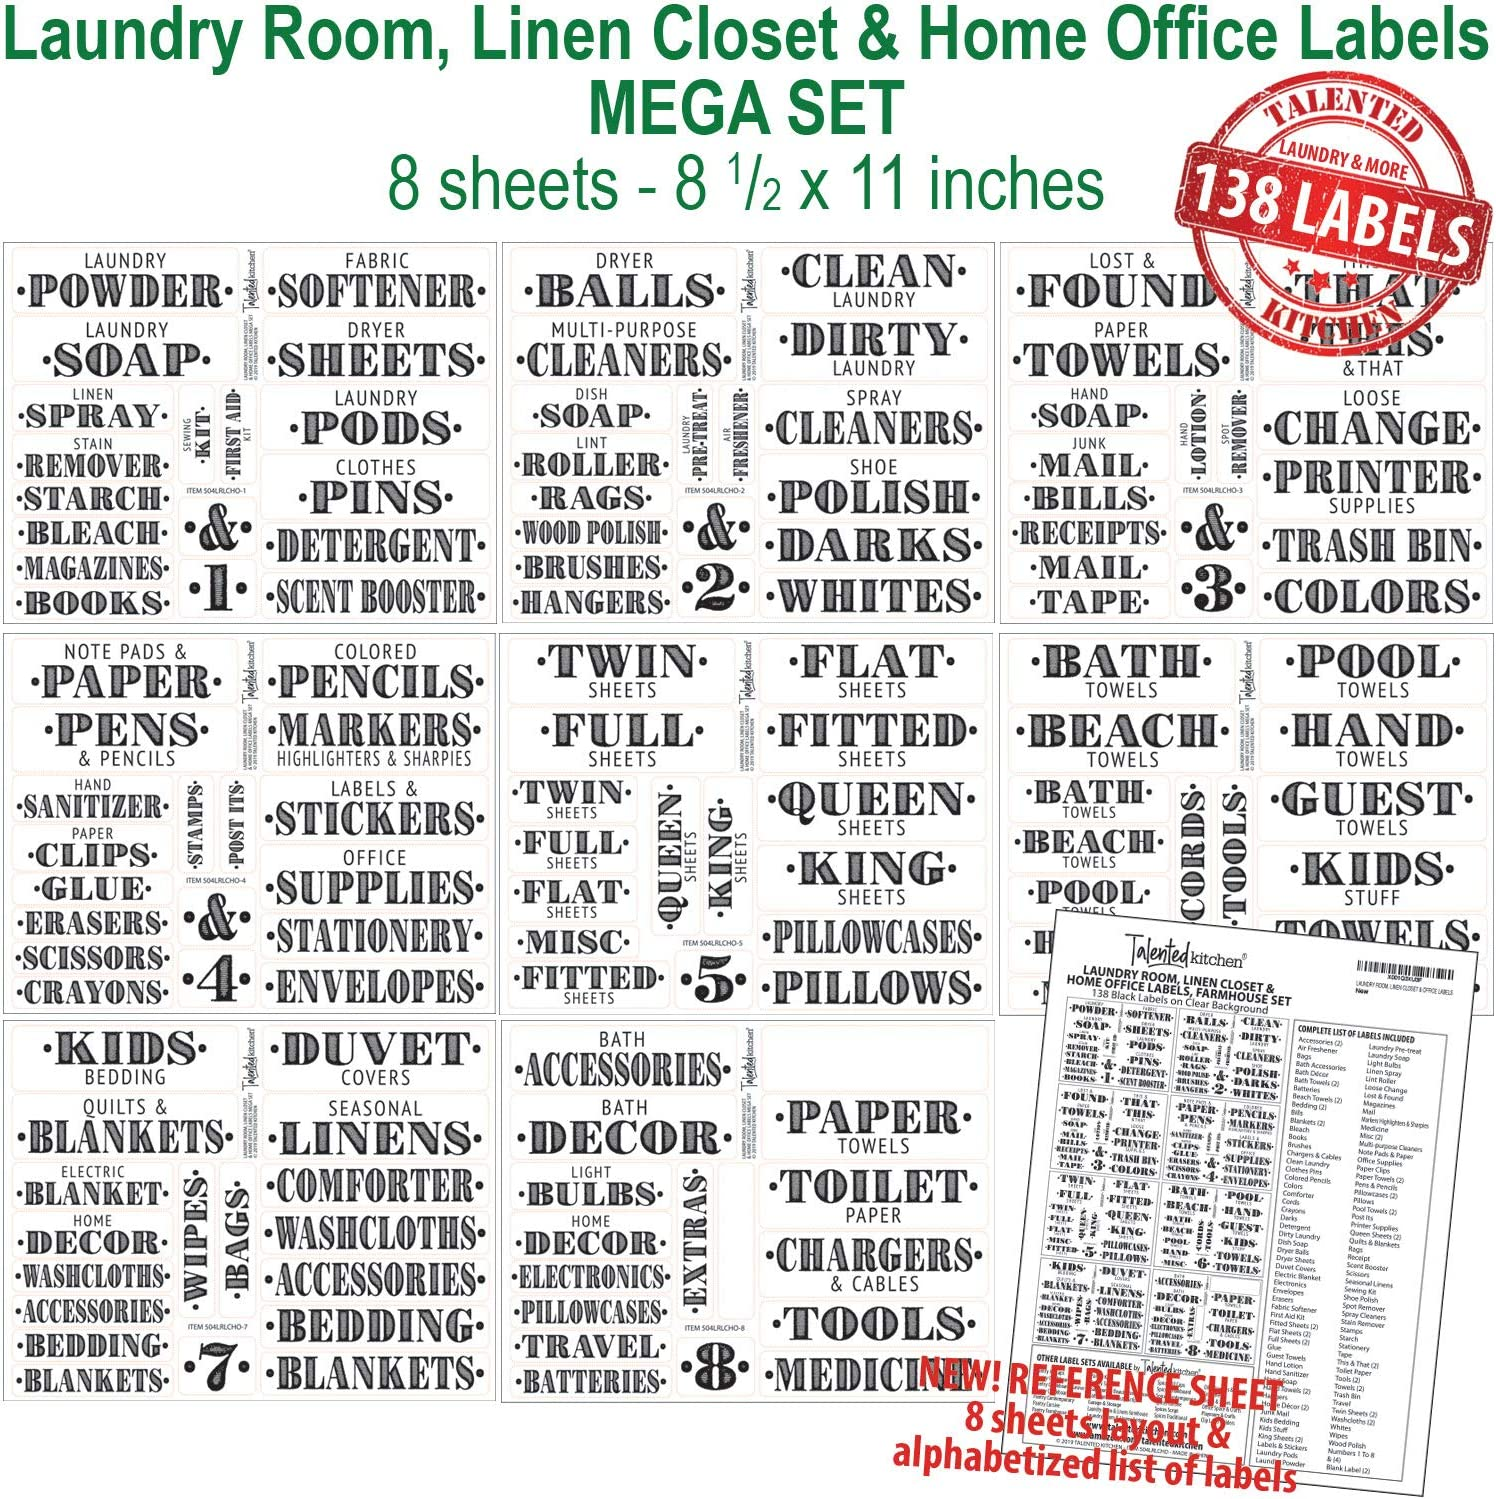 Talented Kitchen 138 Laundry Room Labels Linen Closet Office Organization Labels Farmhouse Printed Stickers Water Resistant Canister Bin Labels To Declutter Spaces Laundry Linens 138 Labels Office Products Amazon Com